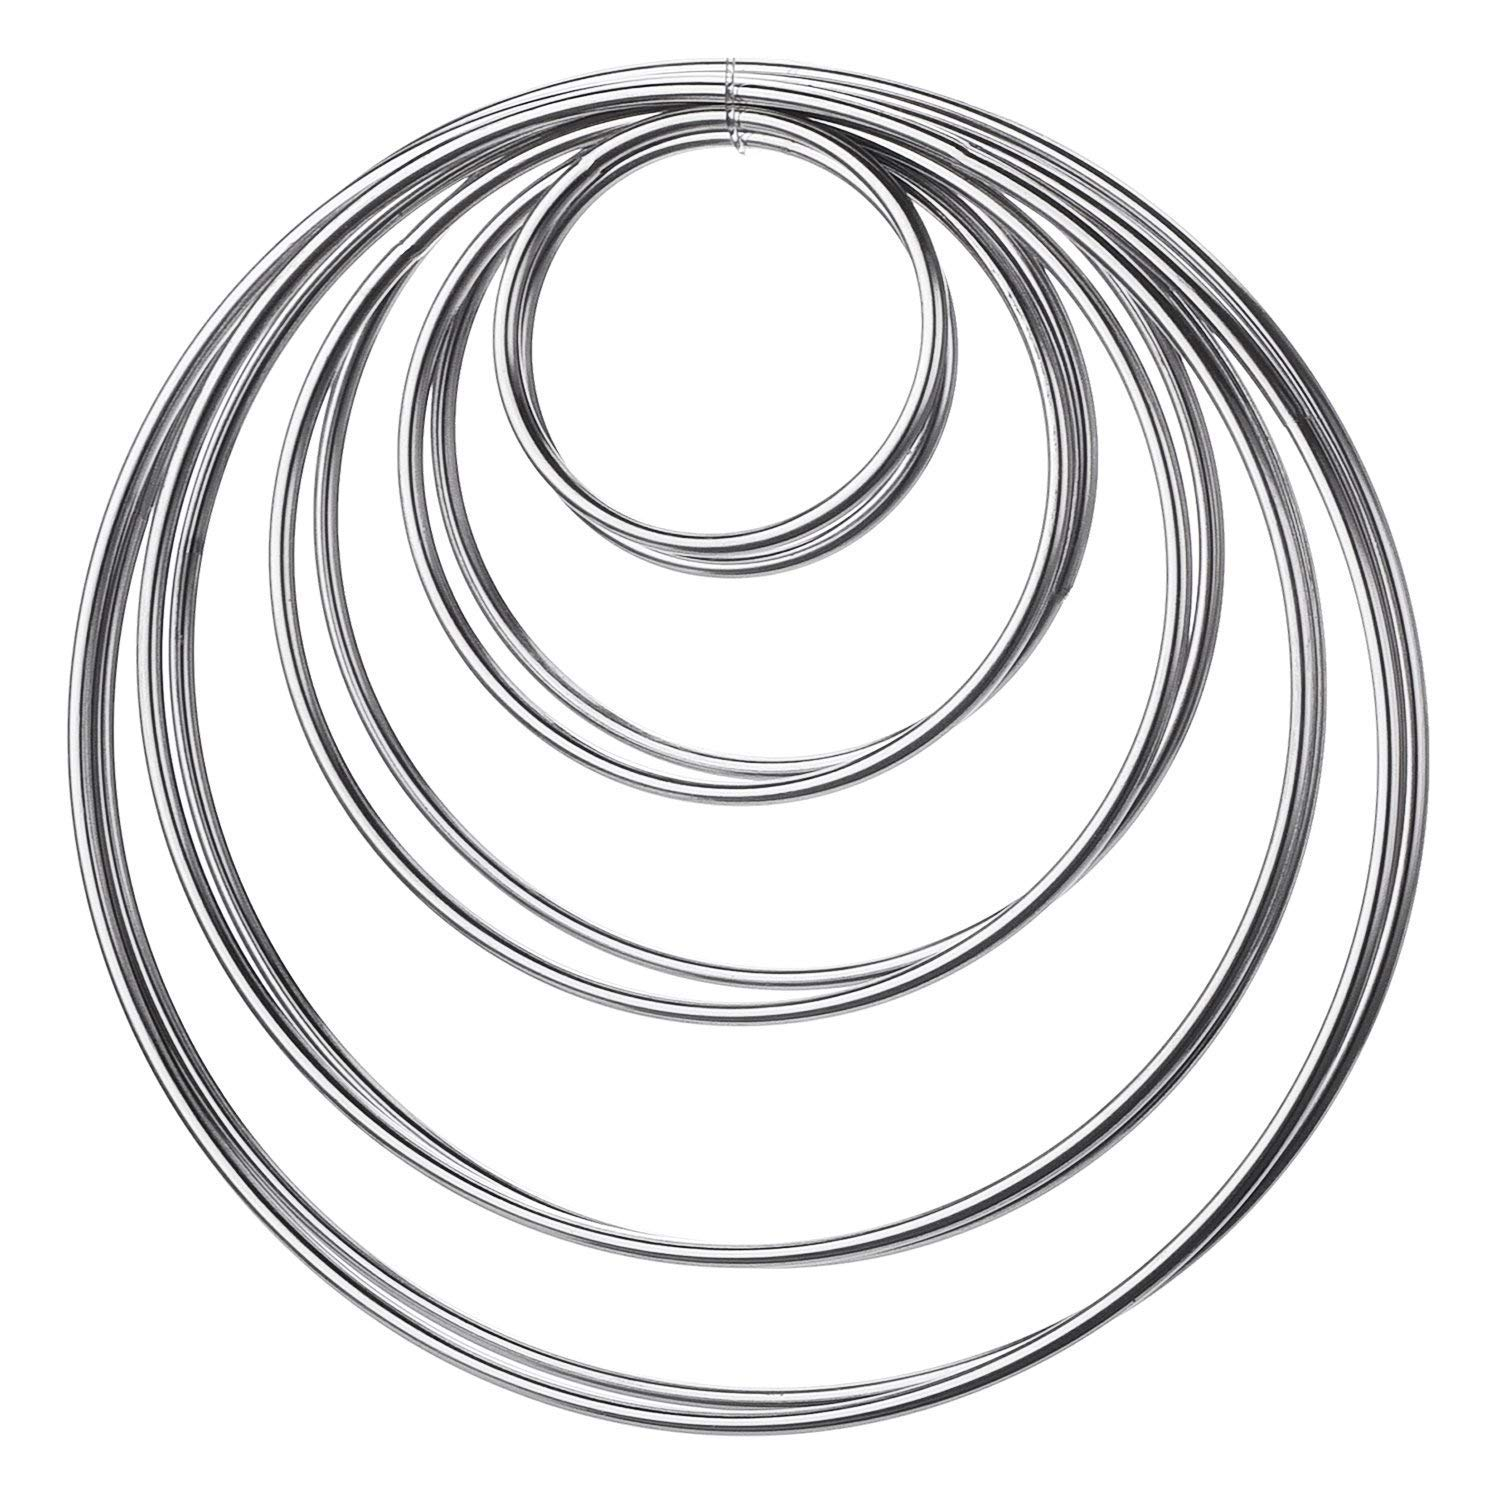 ACE SELECT Metal Hoops Set of 10 Craft Rings Metal Rings for Dream Catcher and Wreath - Silver